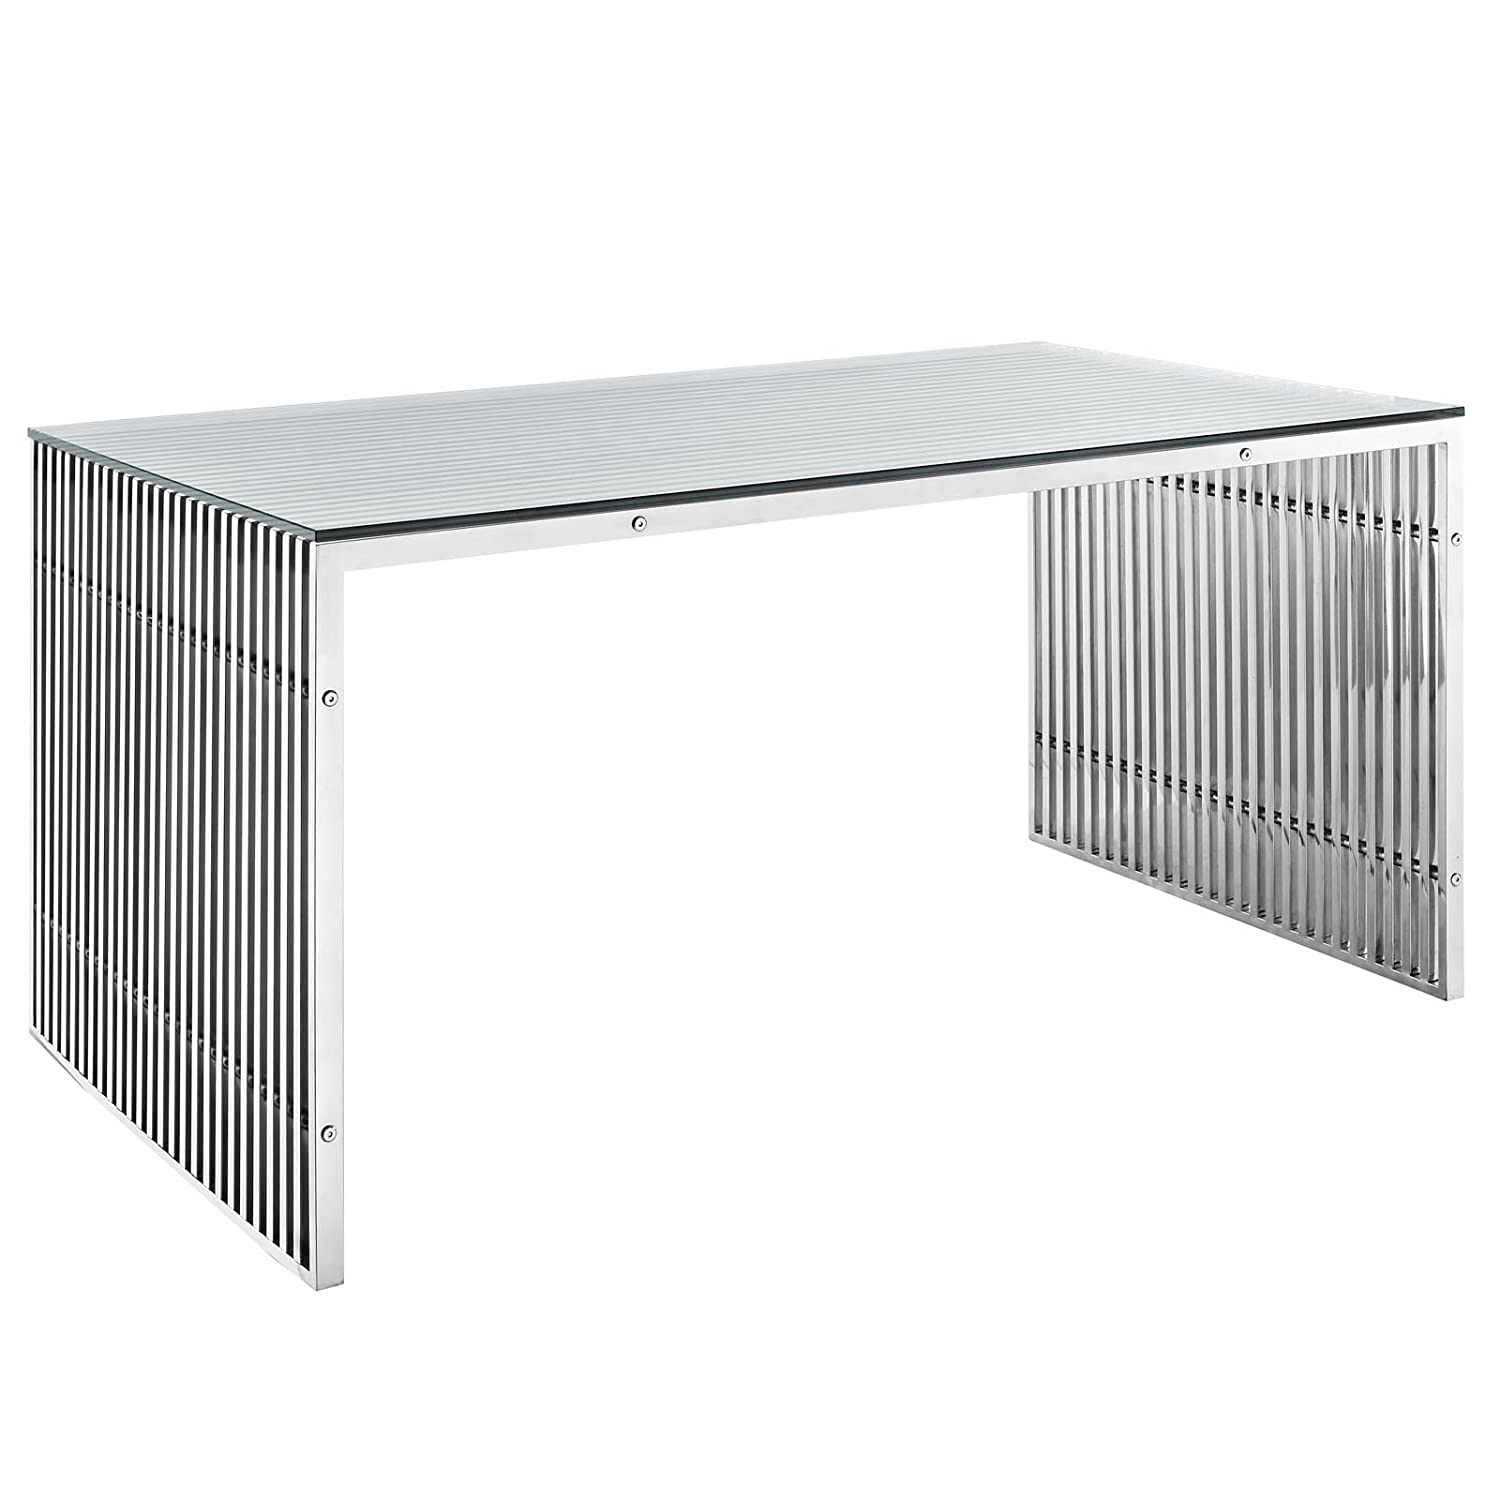 Silver Office Desk   Table Modway Gridiron Contemporary Modern Small Stainless Steel Bench, 19.5